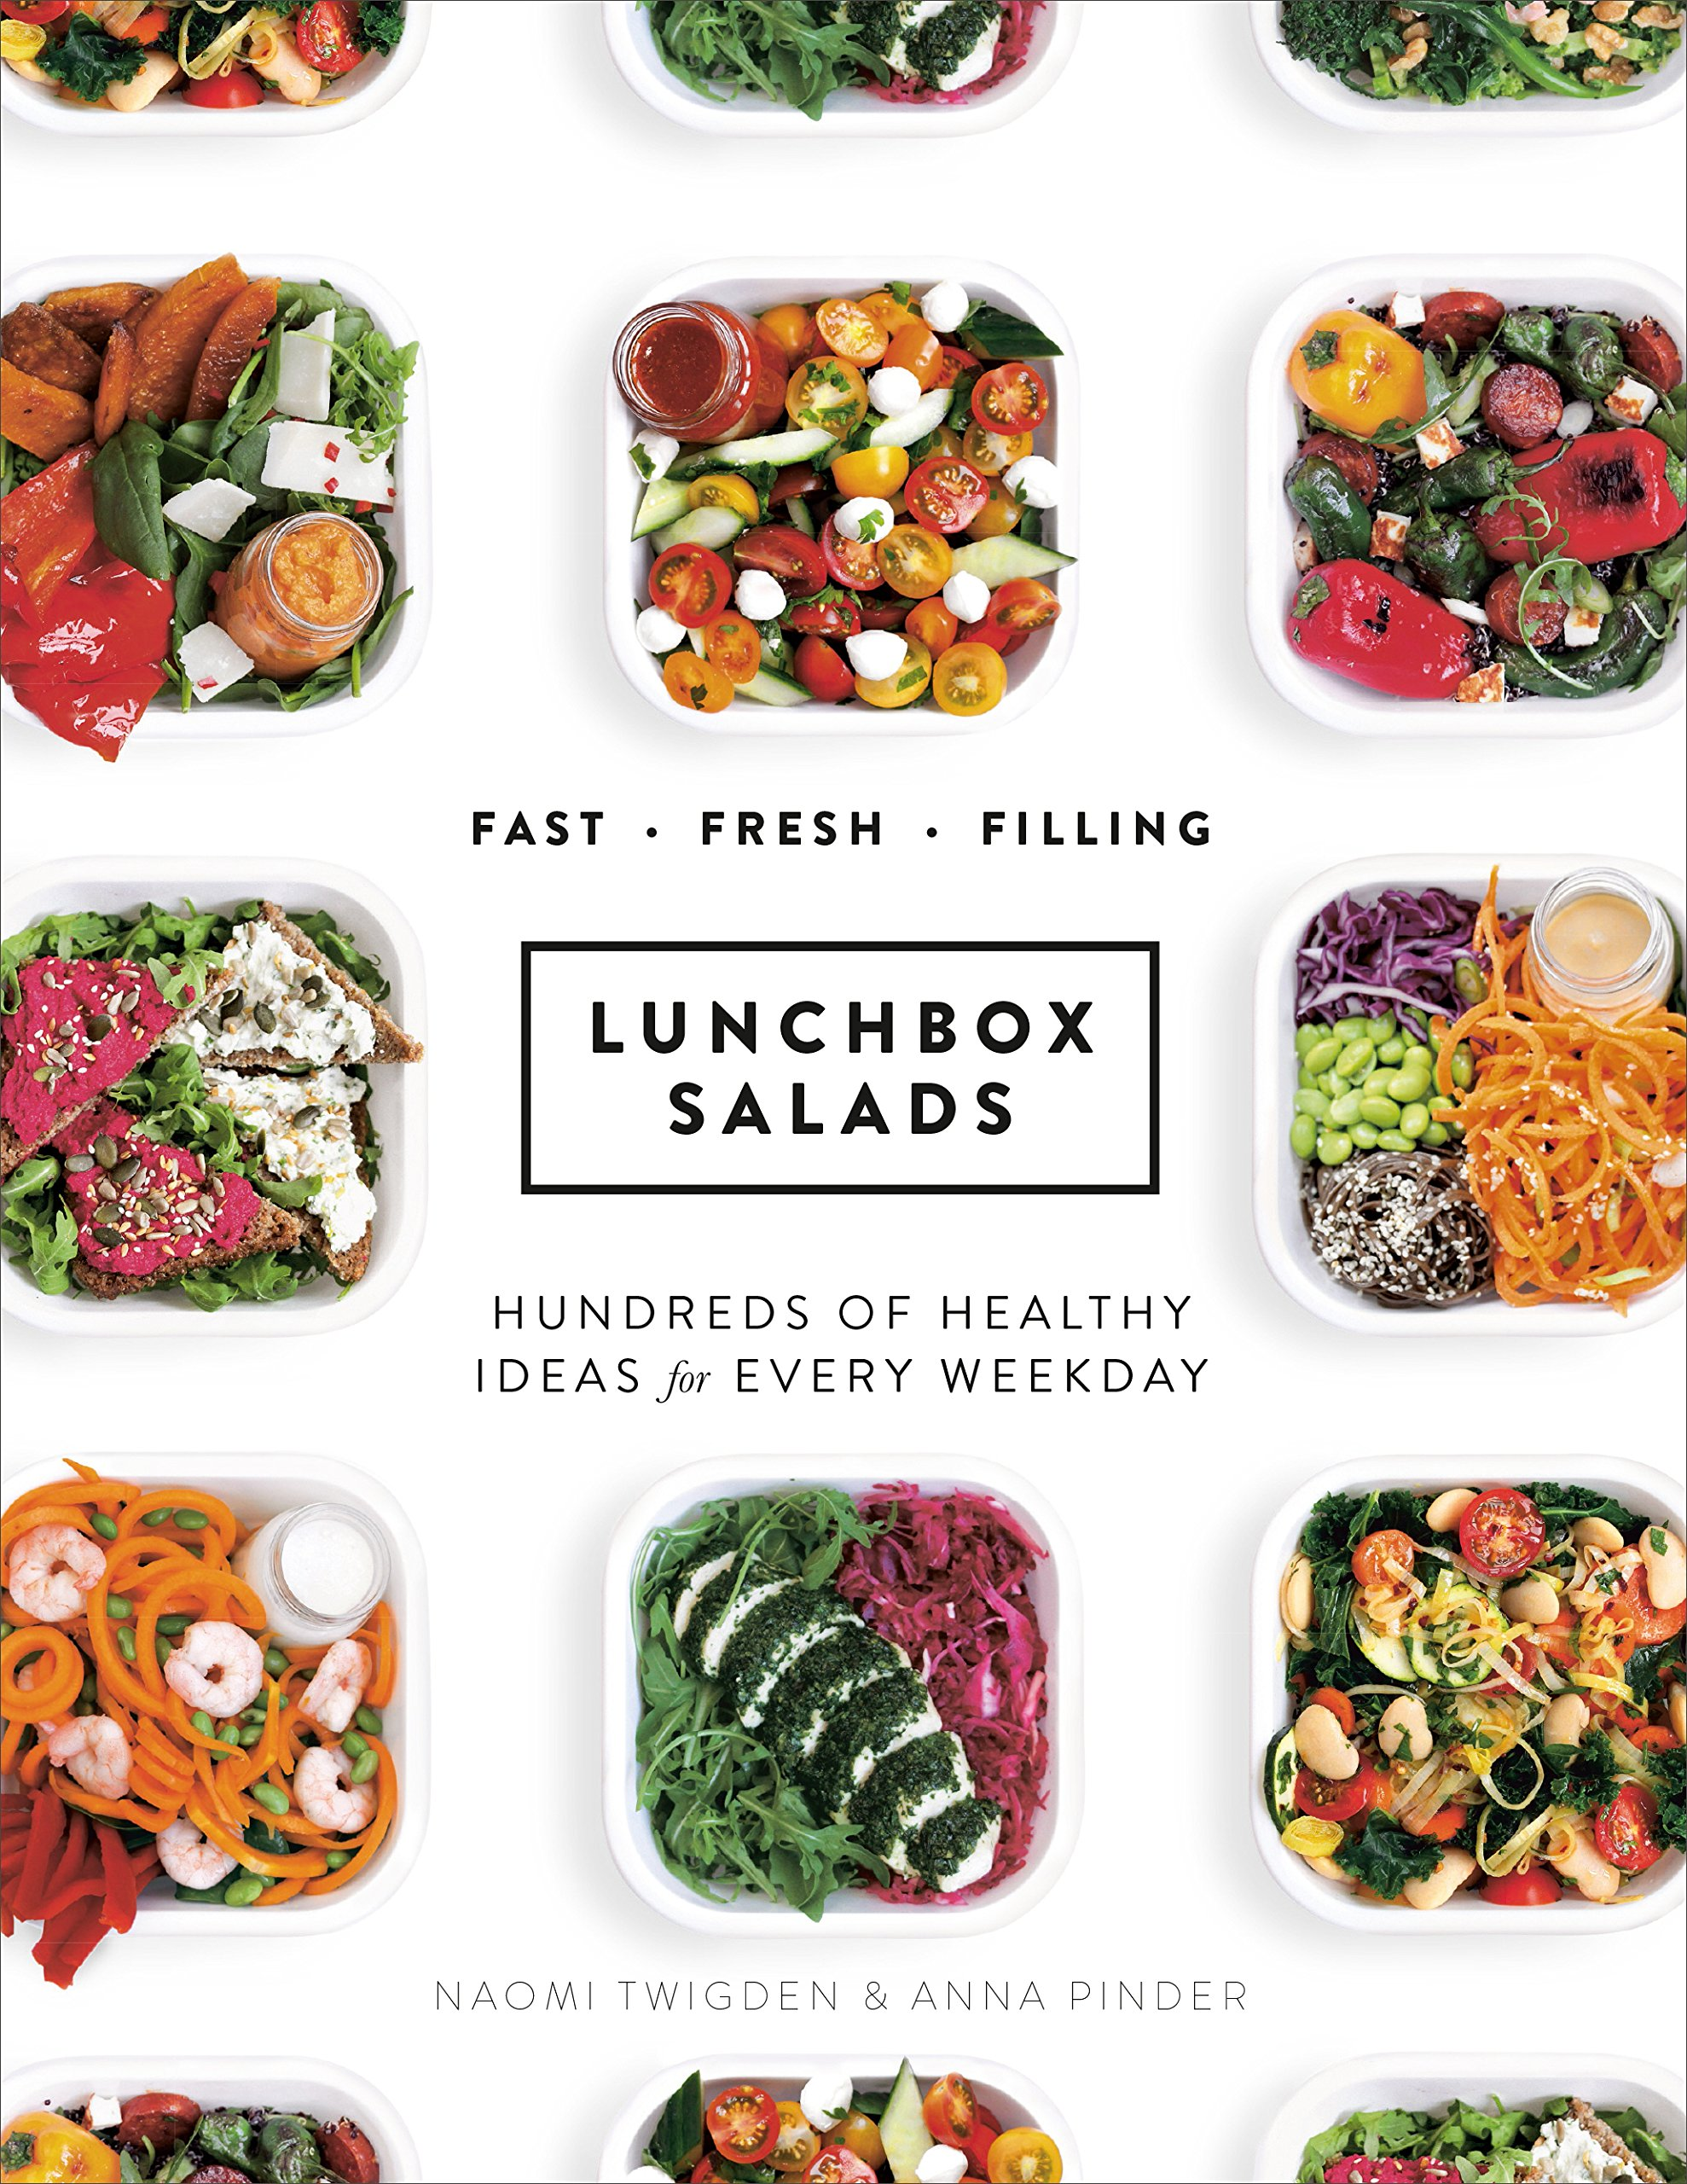 Lunchbox Salads: Recipes to Brighten Up Lunchtime and Fill You Up ...